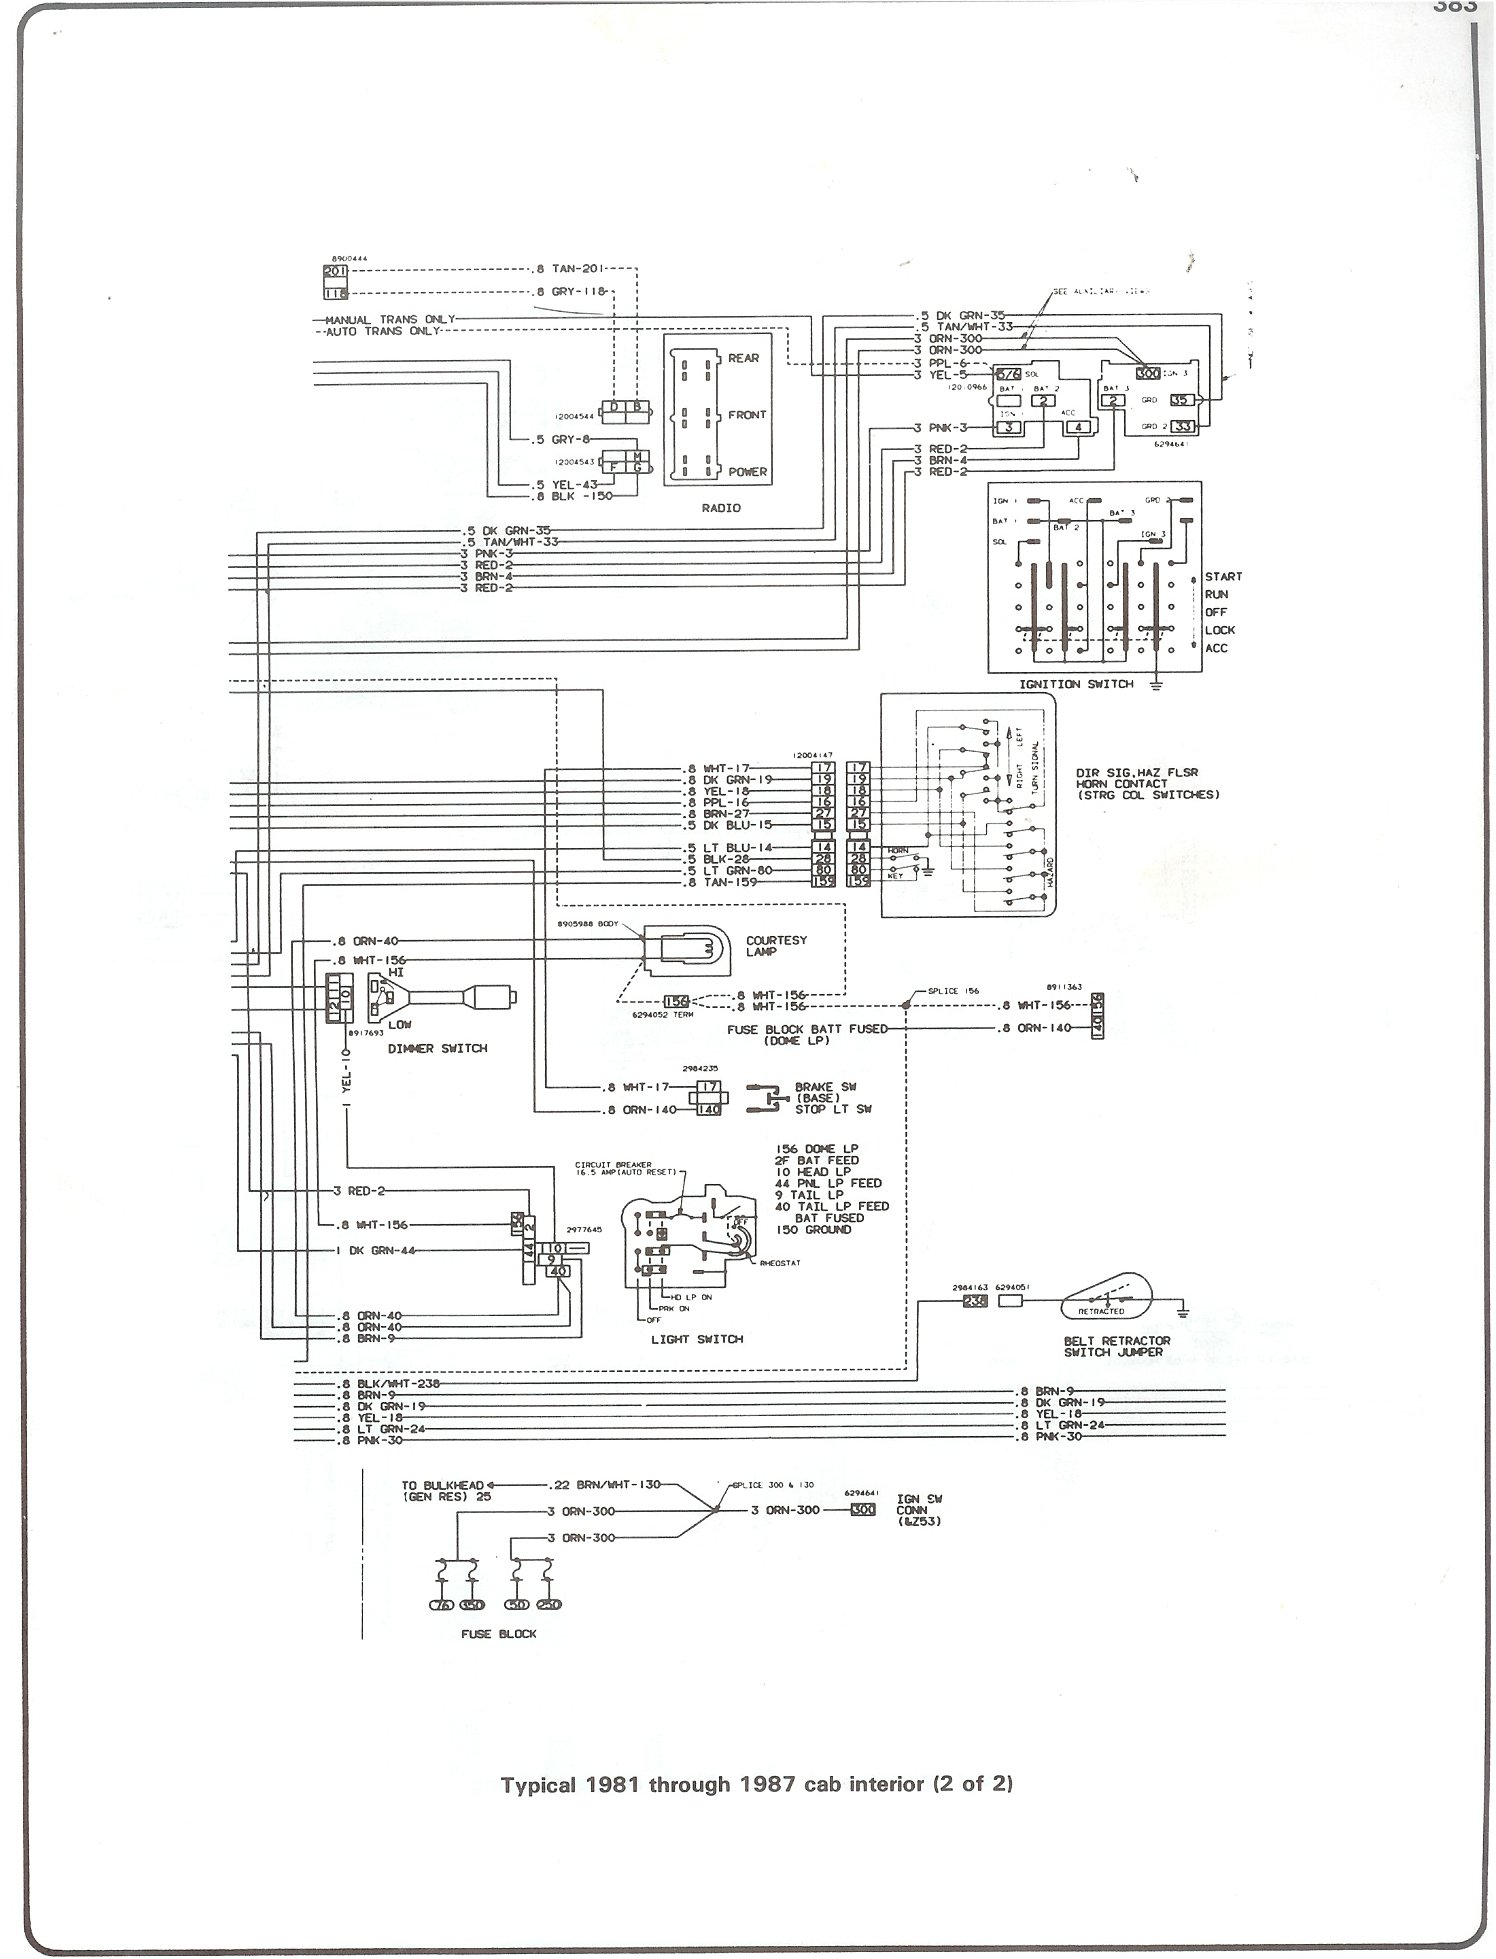 81 87_cab_inter_pg2 complete 73 87 wiring diagrams 1965 chevy c10 starter wiring diagram at suagrazia.org